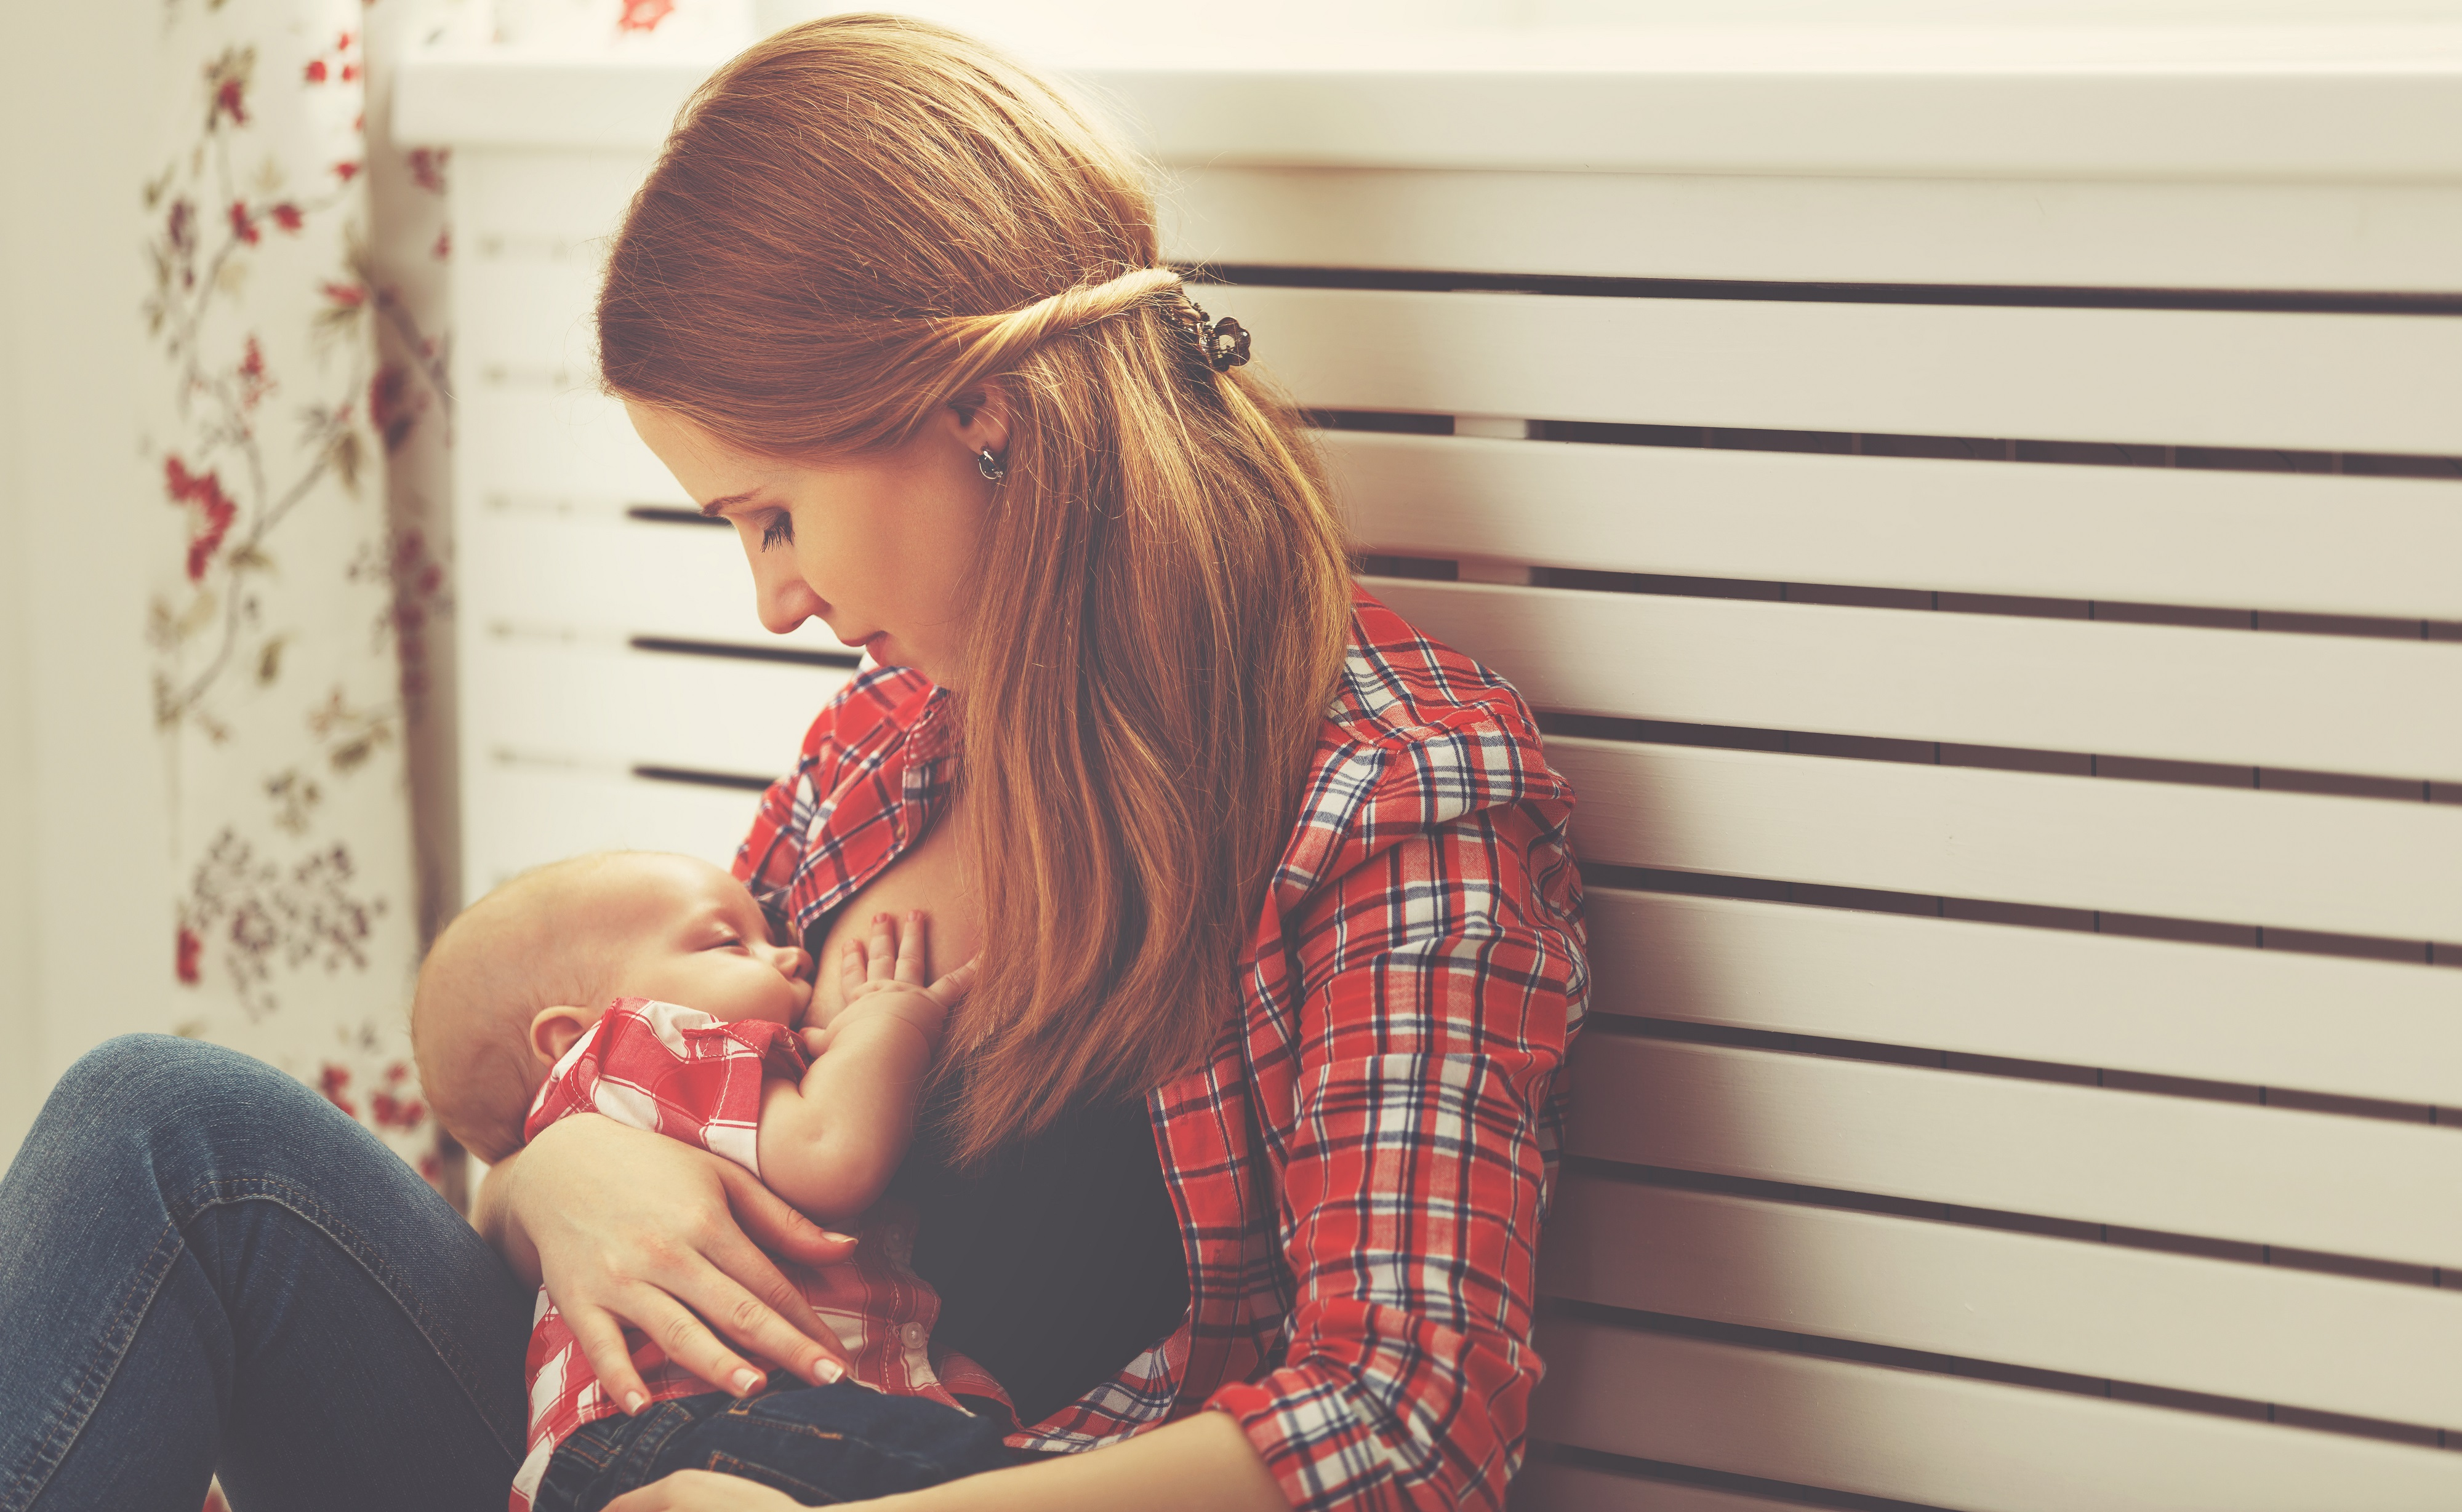 Our Guide of Breastfeeding for Beginners